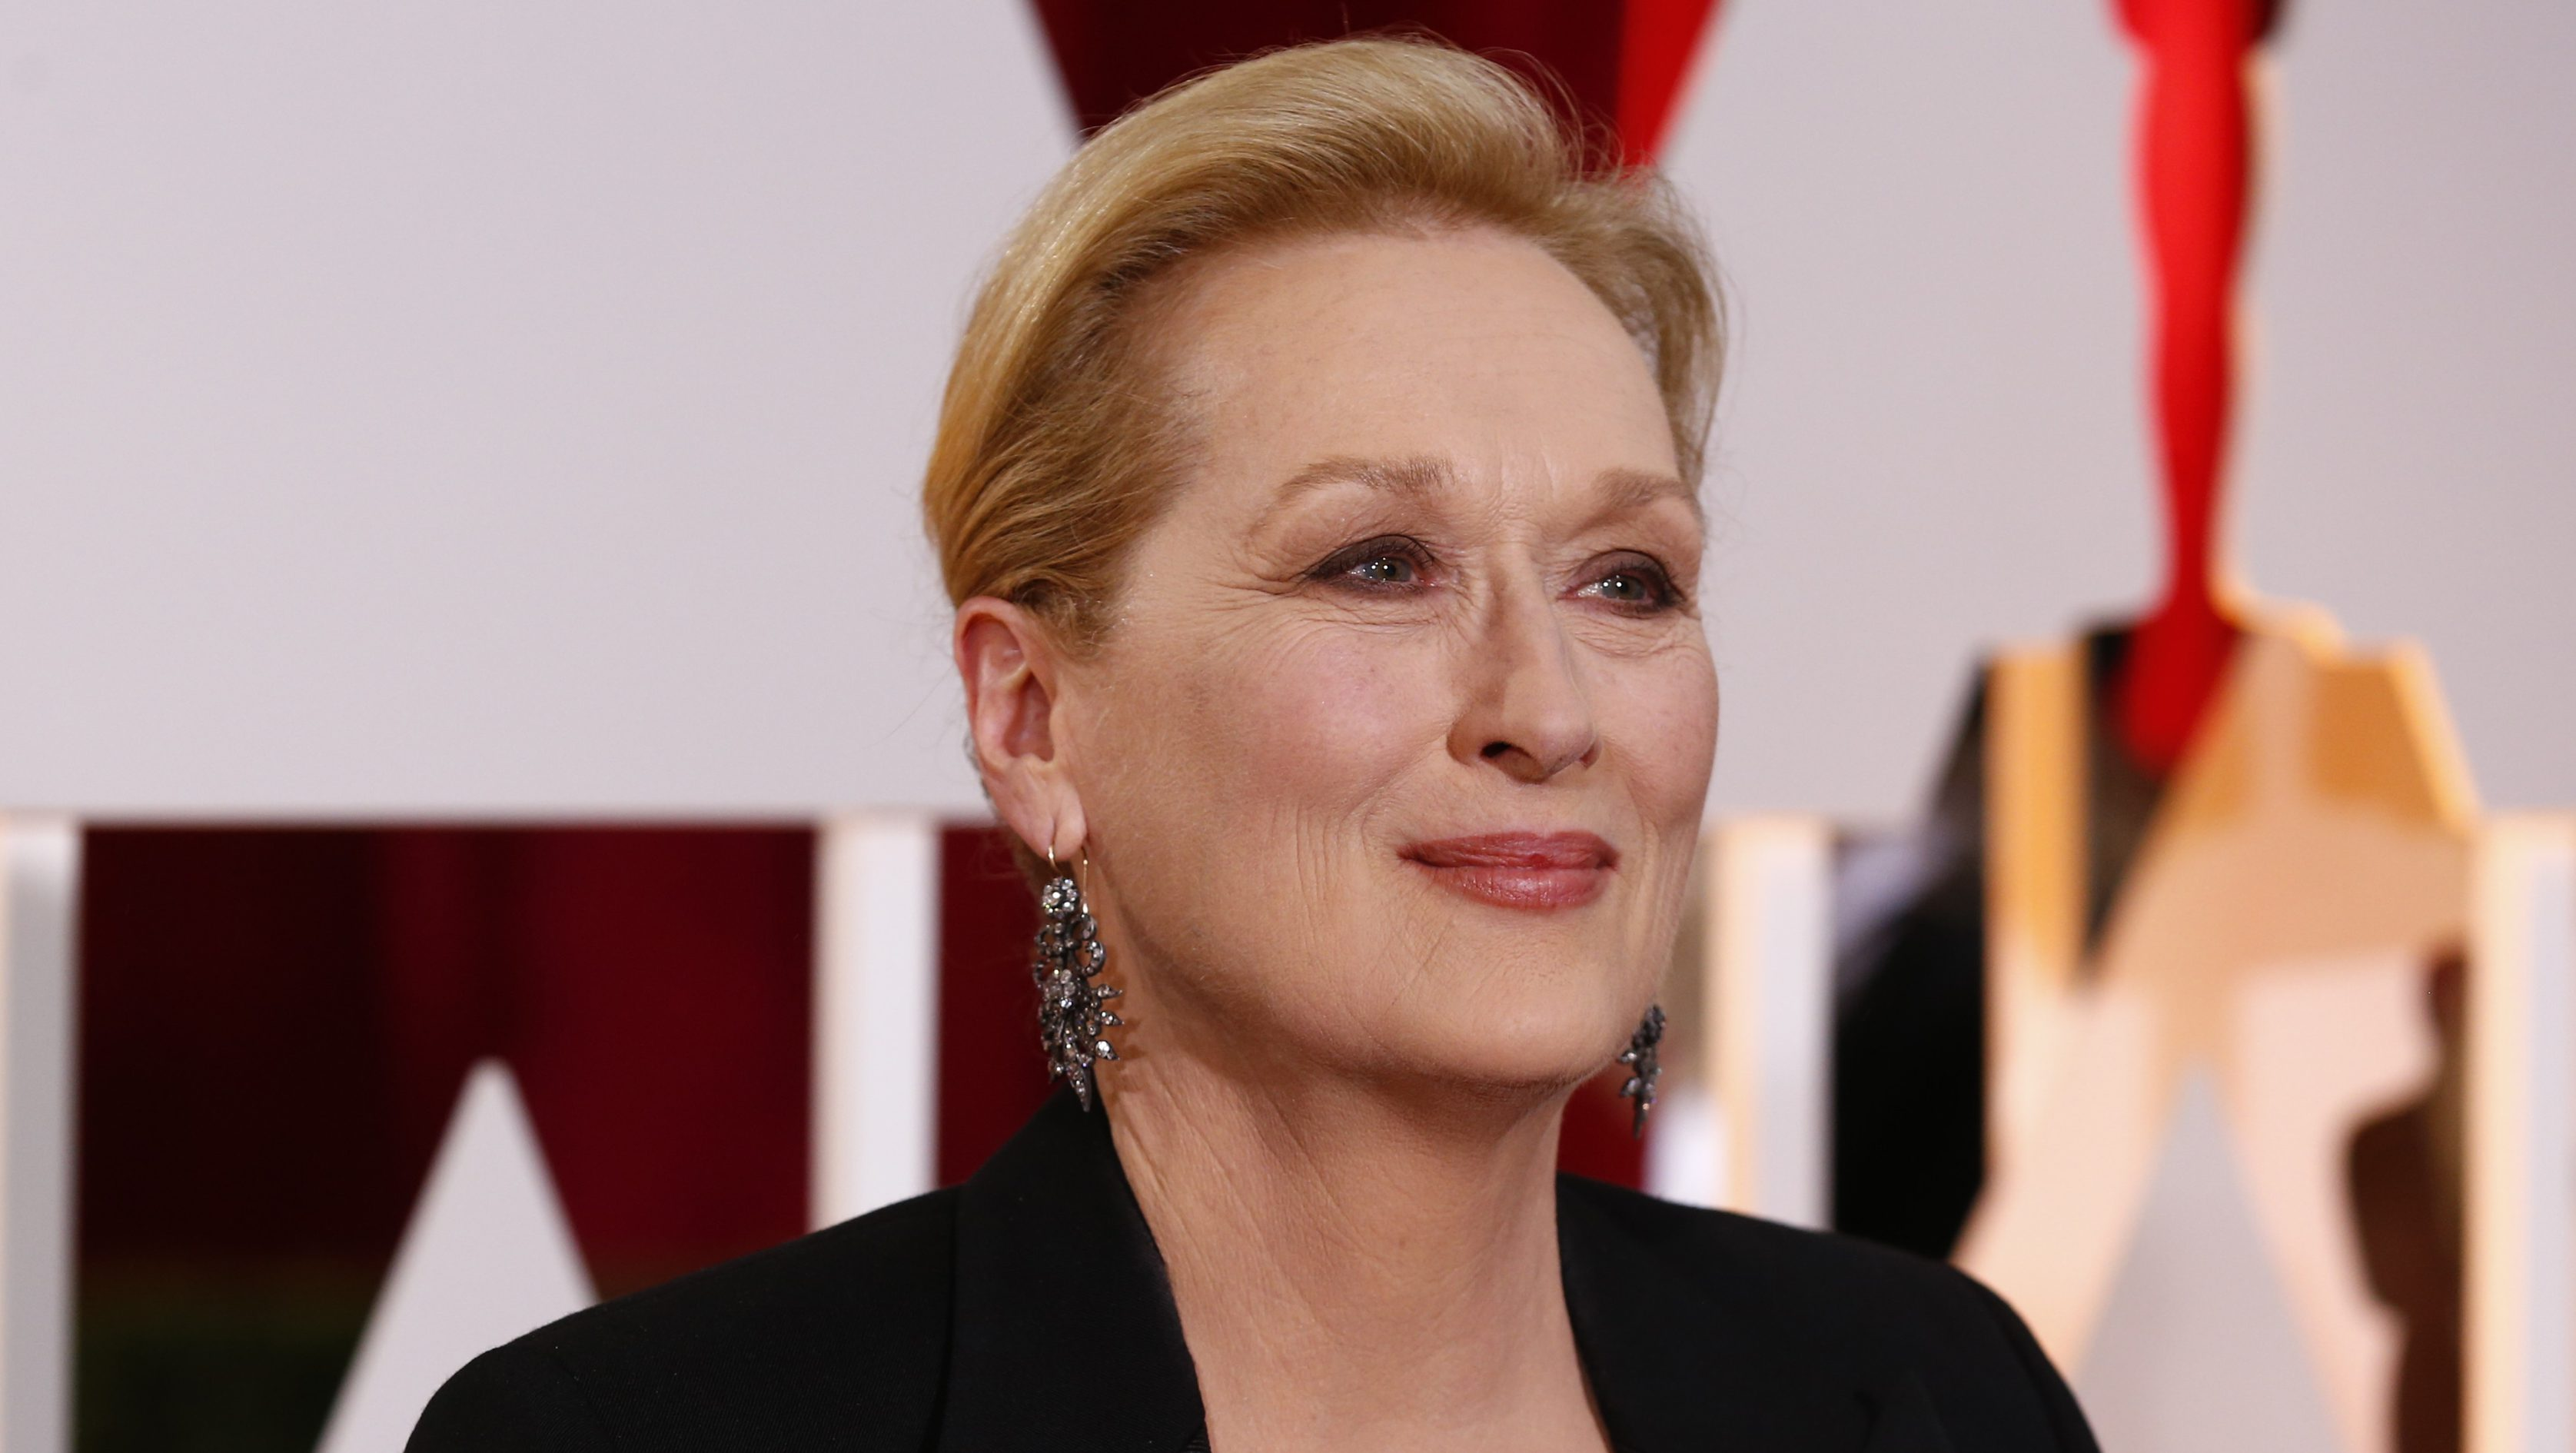 """Actress Meryl Streep, best supporting actress nominee for her role in """"Into the Woods"""" arrives at the 87th Academy Awards in Hollywood, California February 22, 2015.  REUTERS/Lucas Jackson (UNITED STATES TAGS:ENTERTAINMENT) (OSCARS-ARRIVALS) - TB3EB2N0DT81H"""